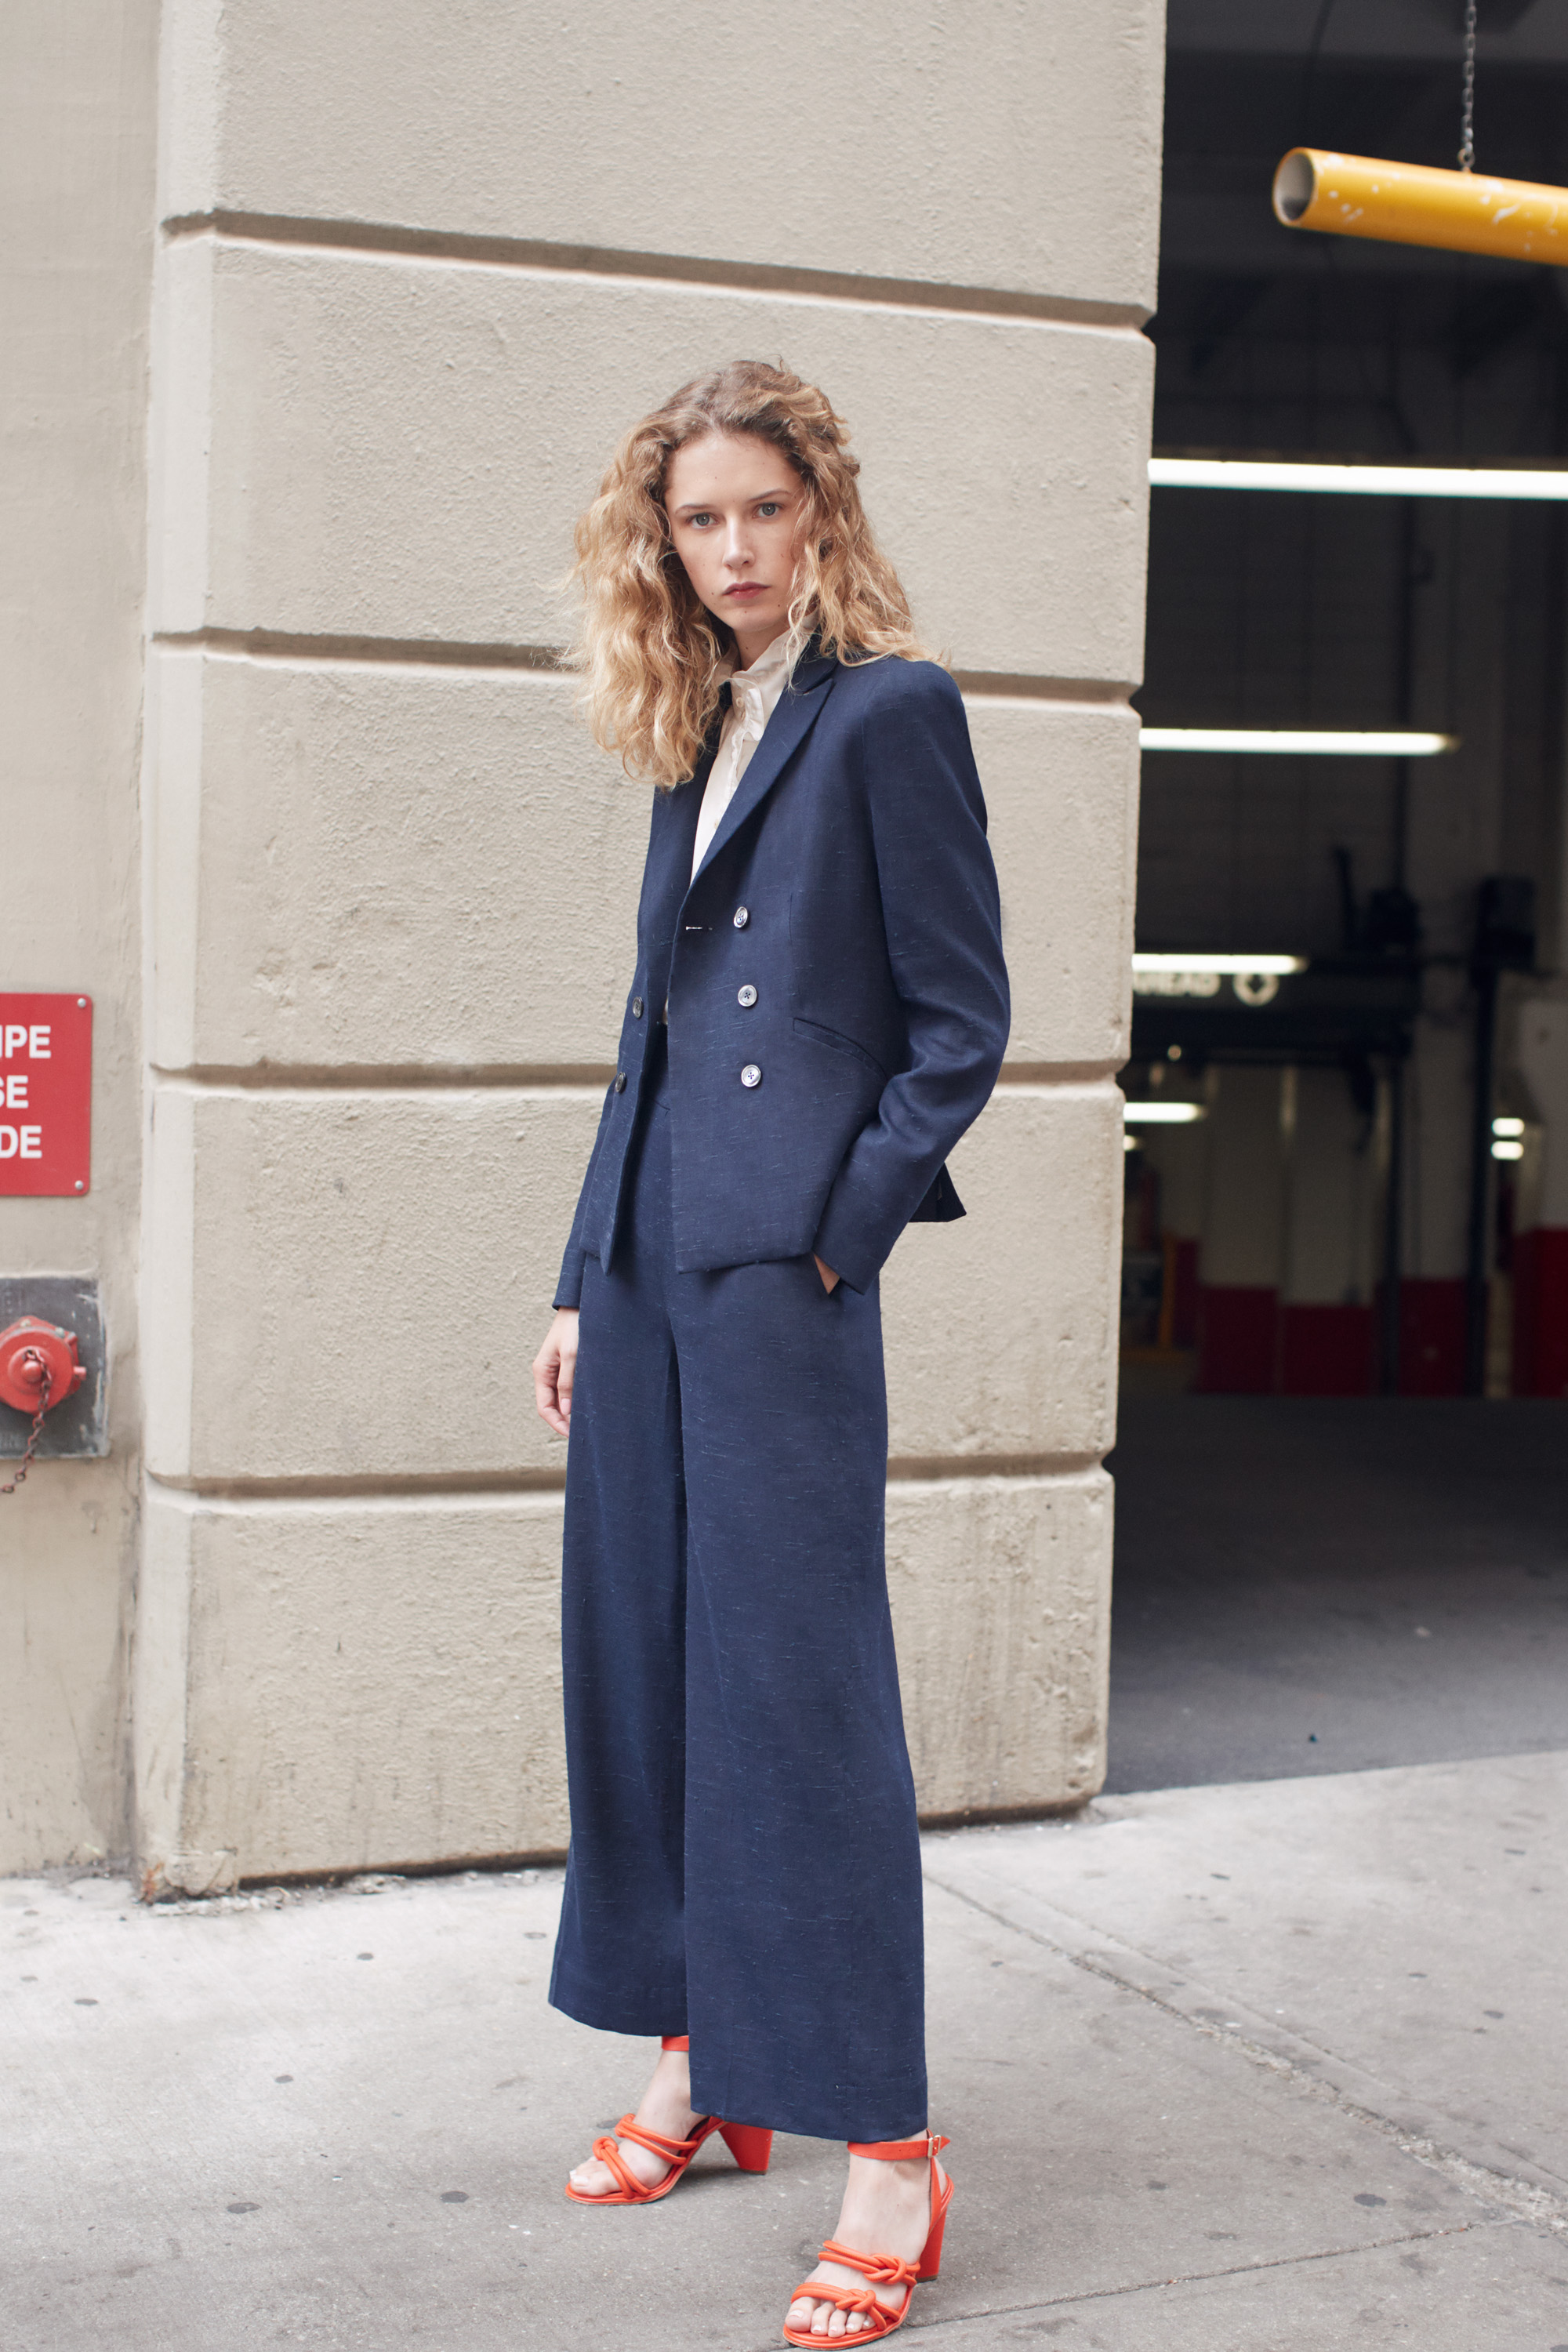 A look from Tailored Rebecca Taylor.